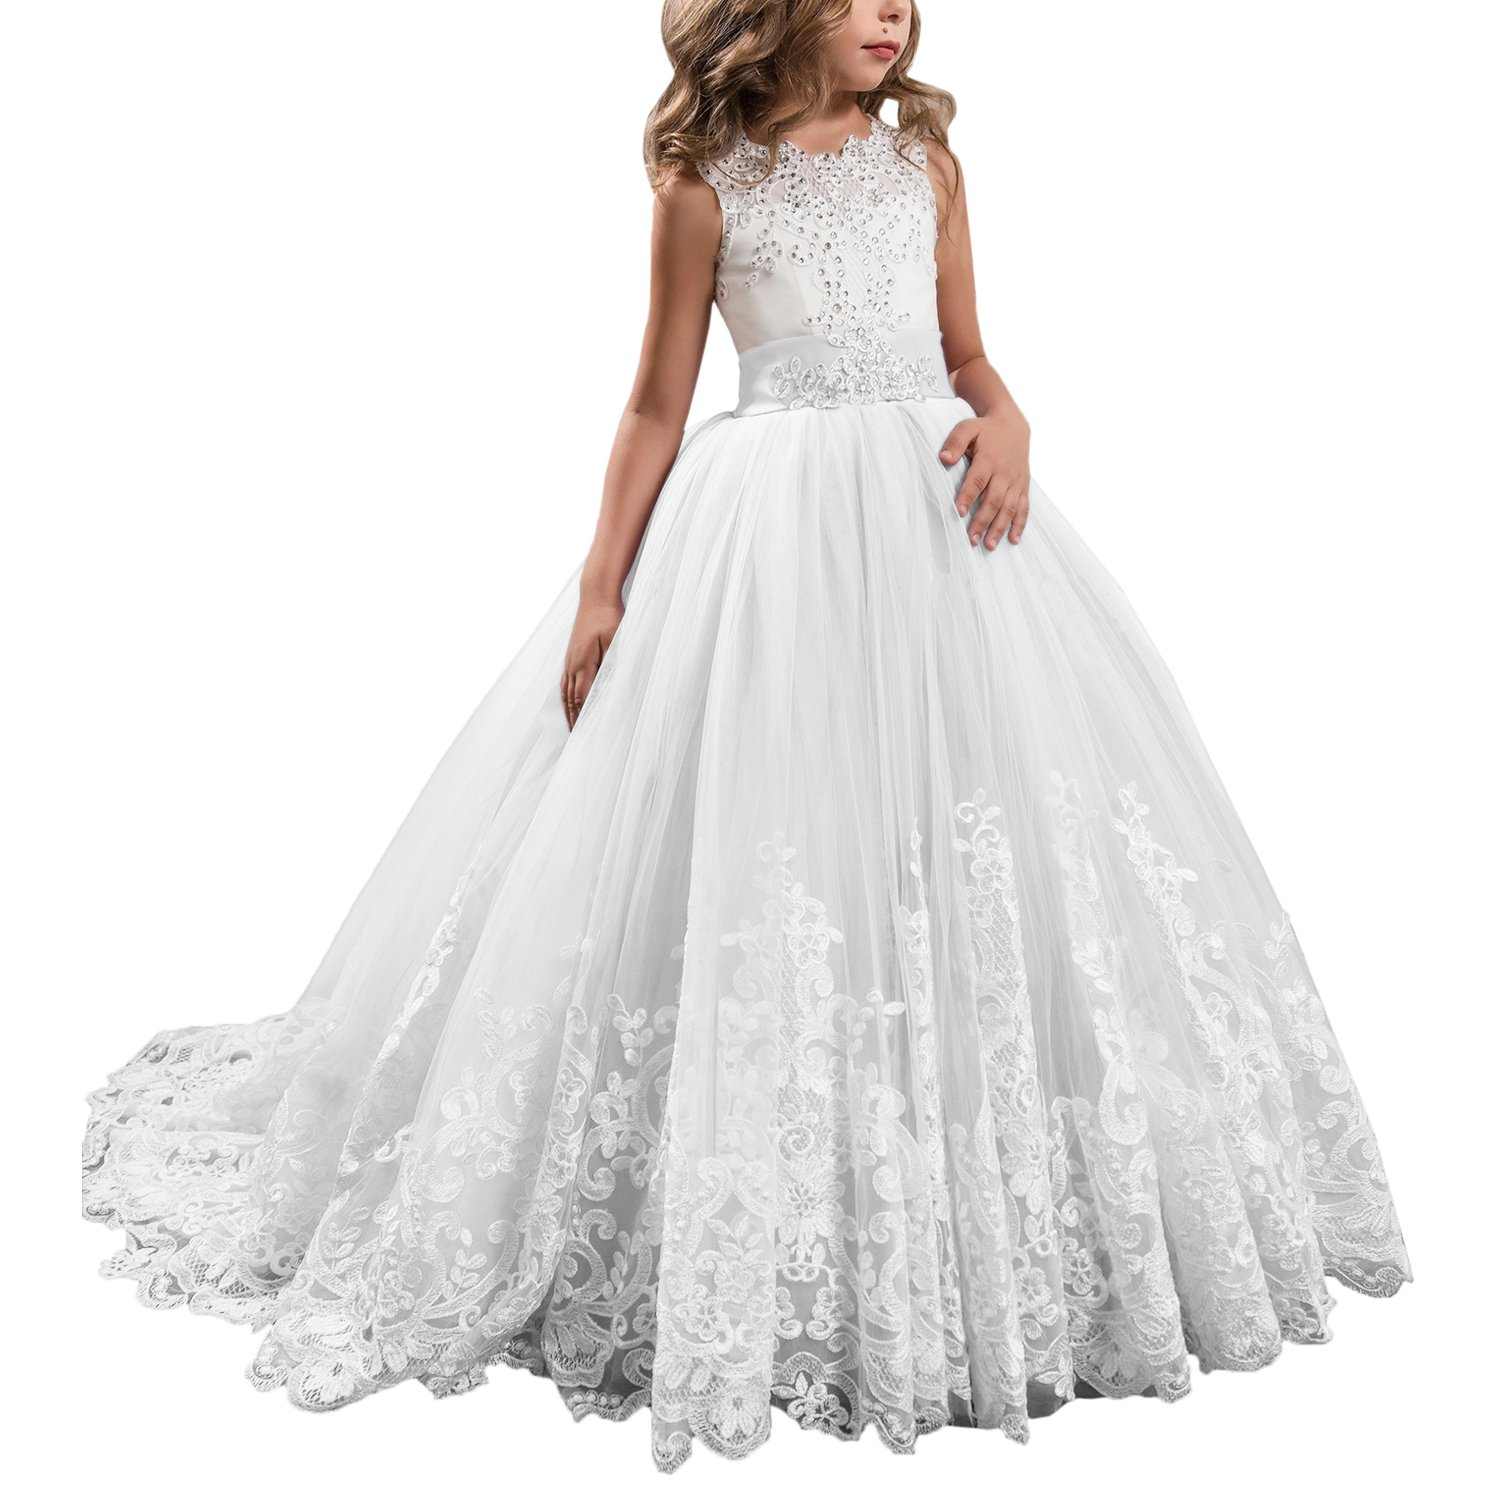 Girls special occasion dresses amazon wde princess white long girls pageant dresses kids prom puffy tulle ball gown us 6 ombrellifo Gallery